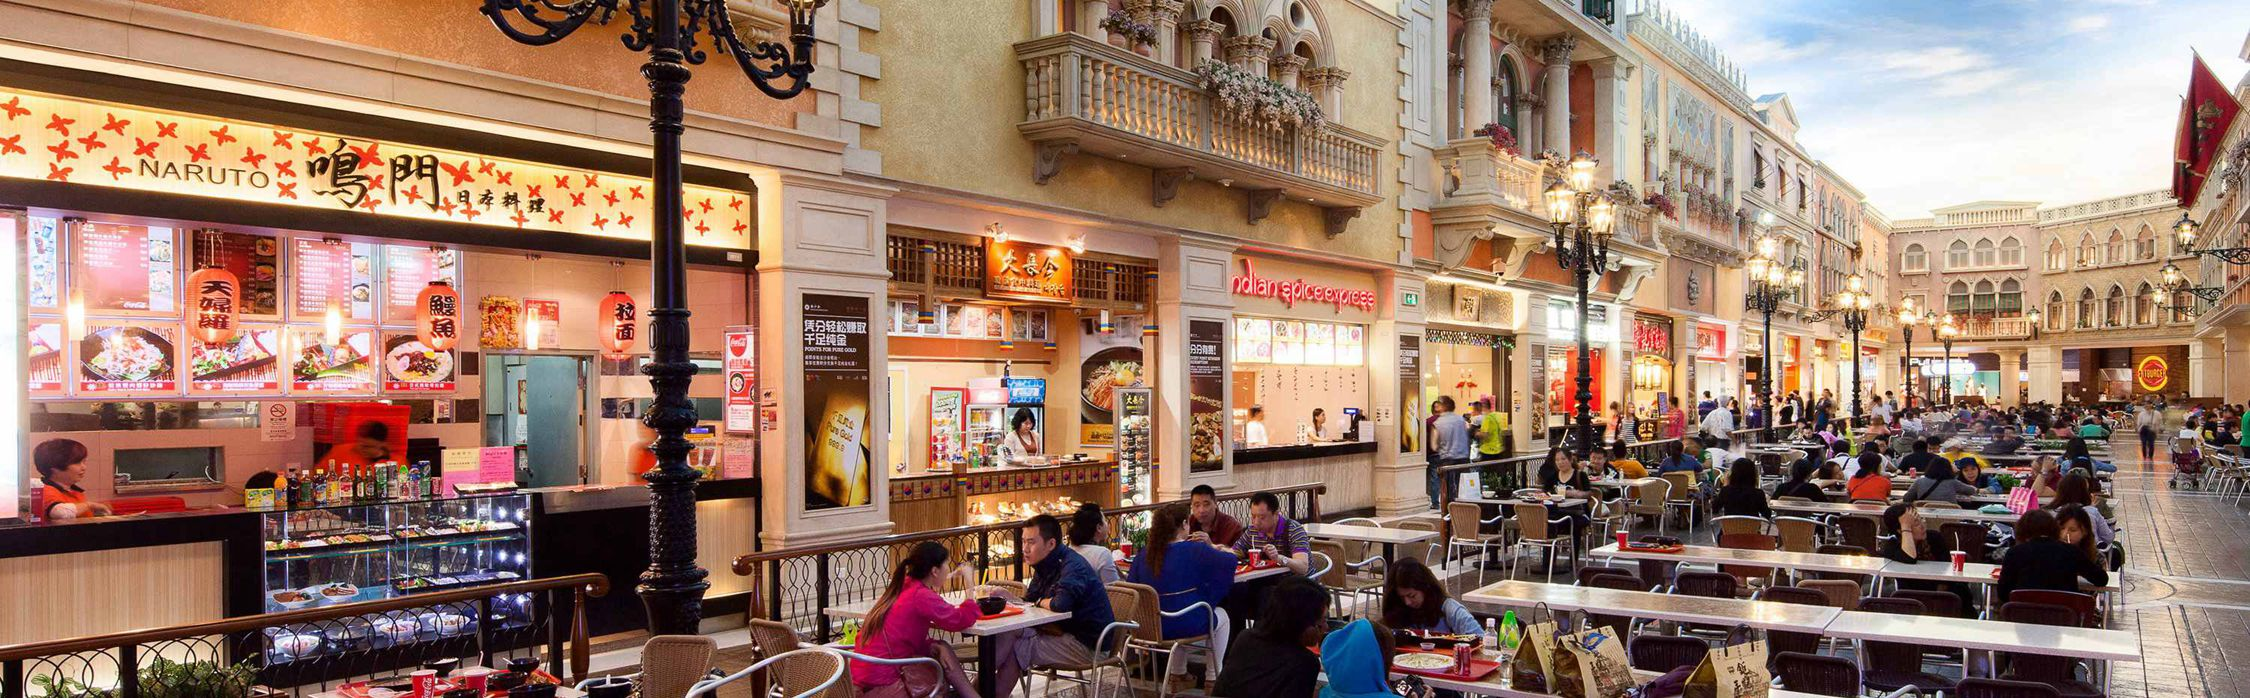 venetian macao food court